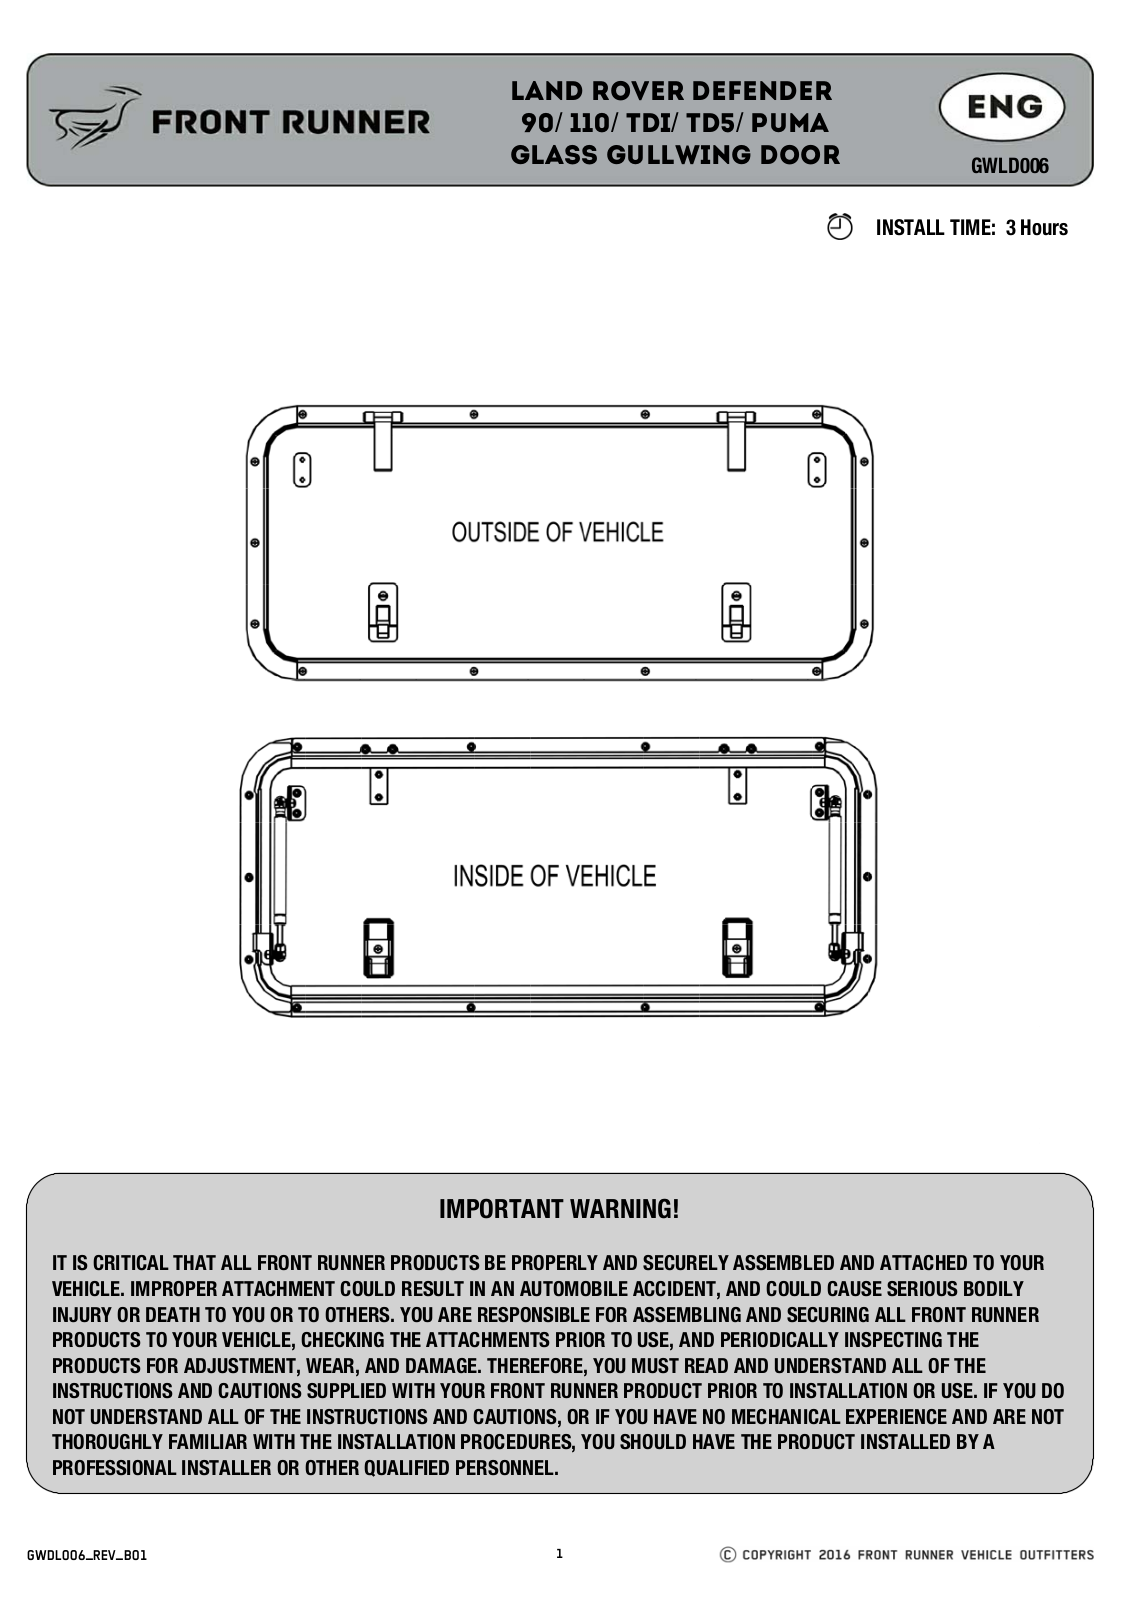 Installation instructions for GWLD006